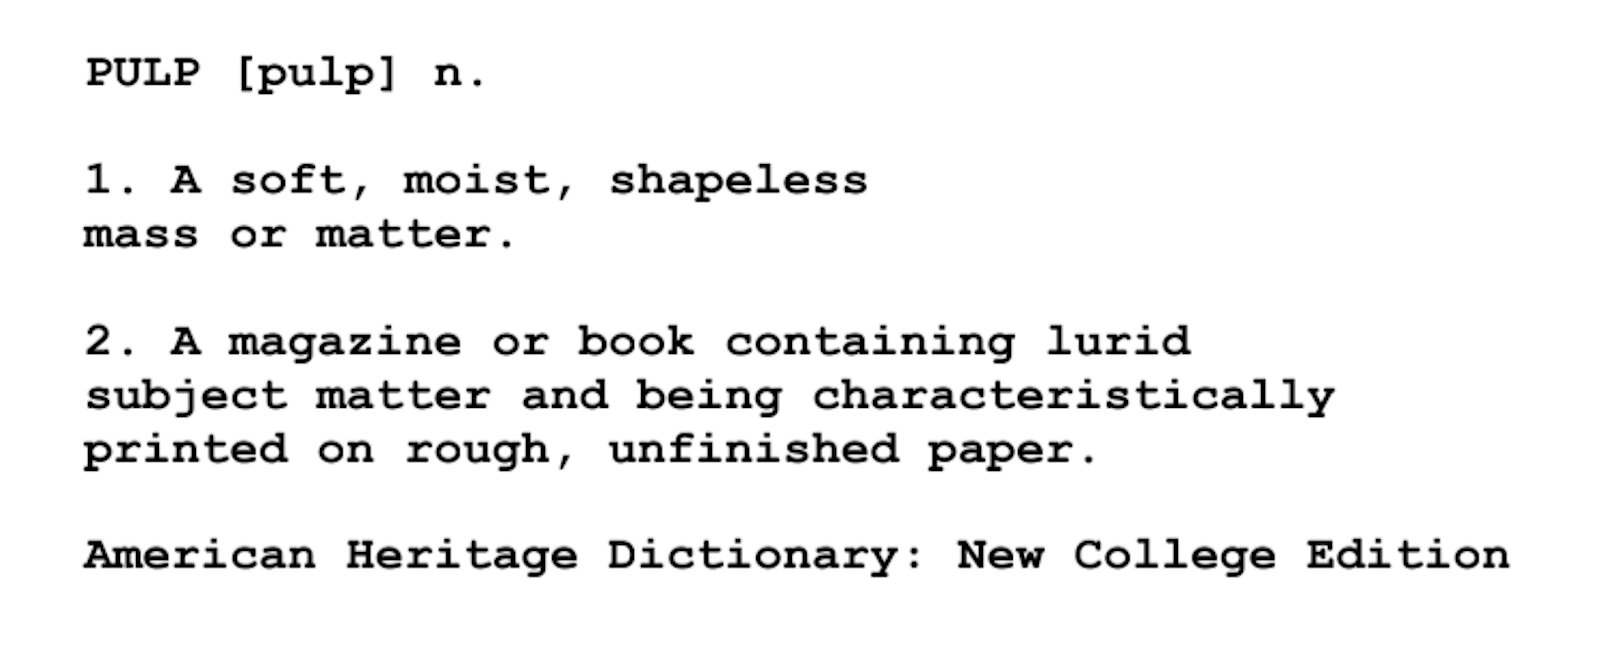 Screenplay Examples - Pulp Fiction Script - Screenplay Snippet 7 - Pulp Definition